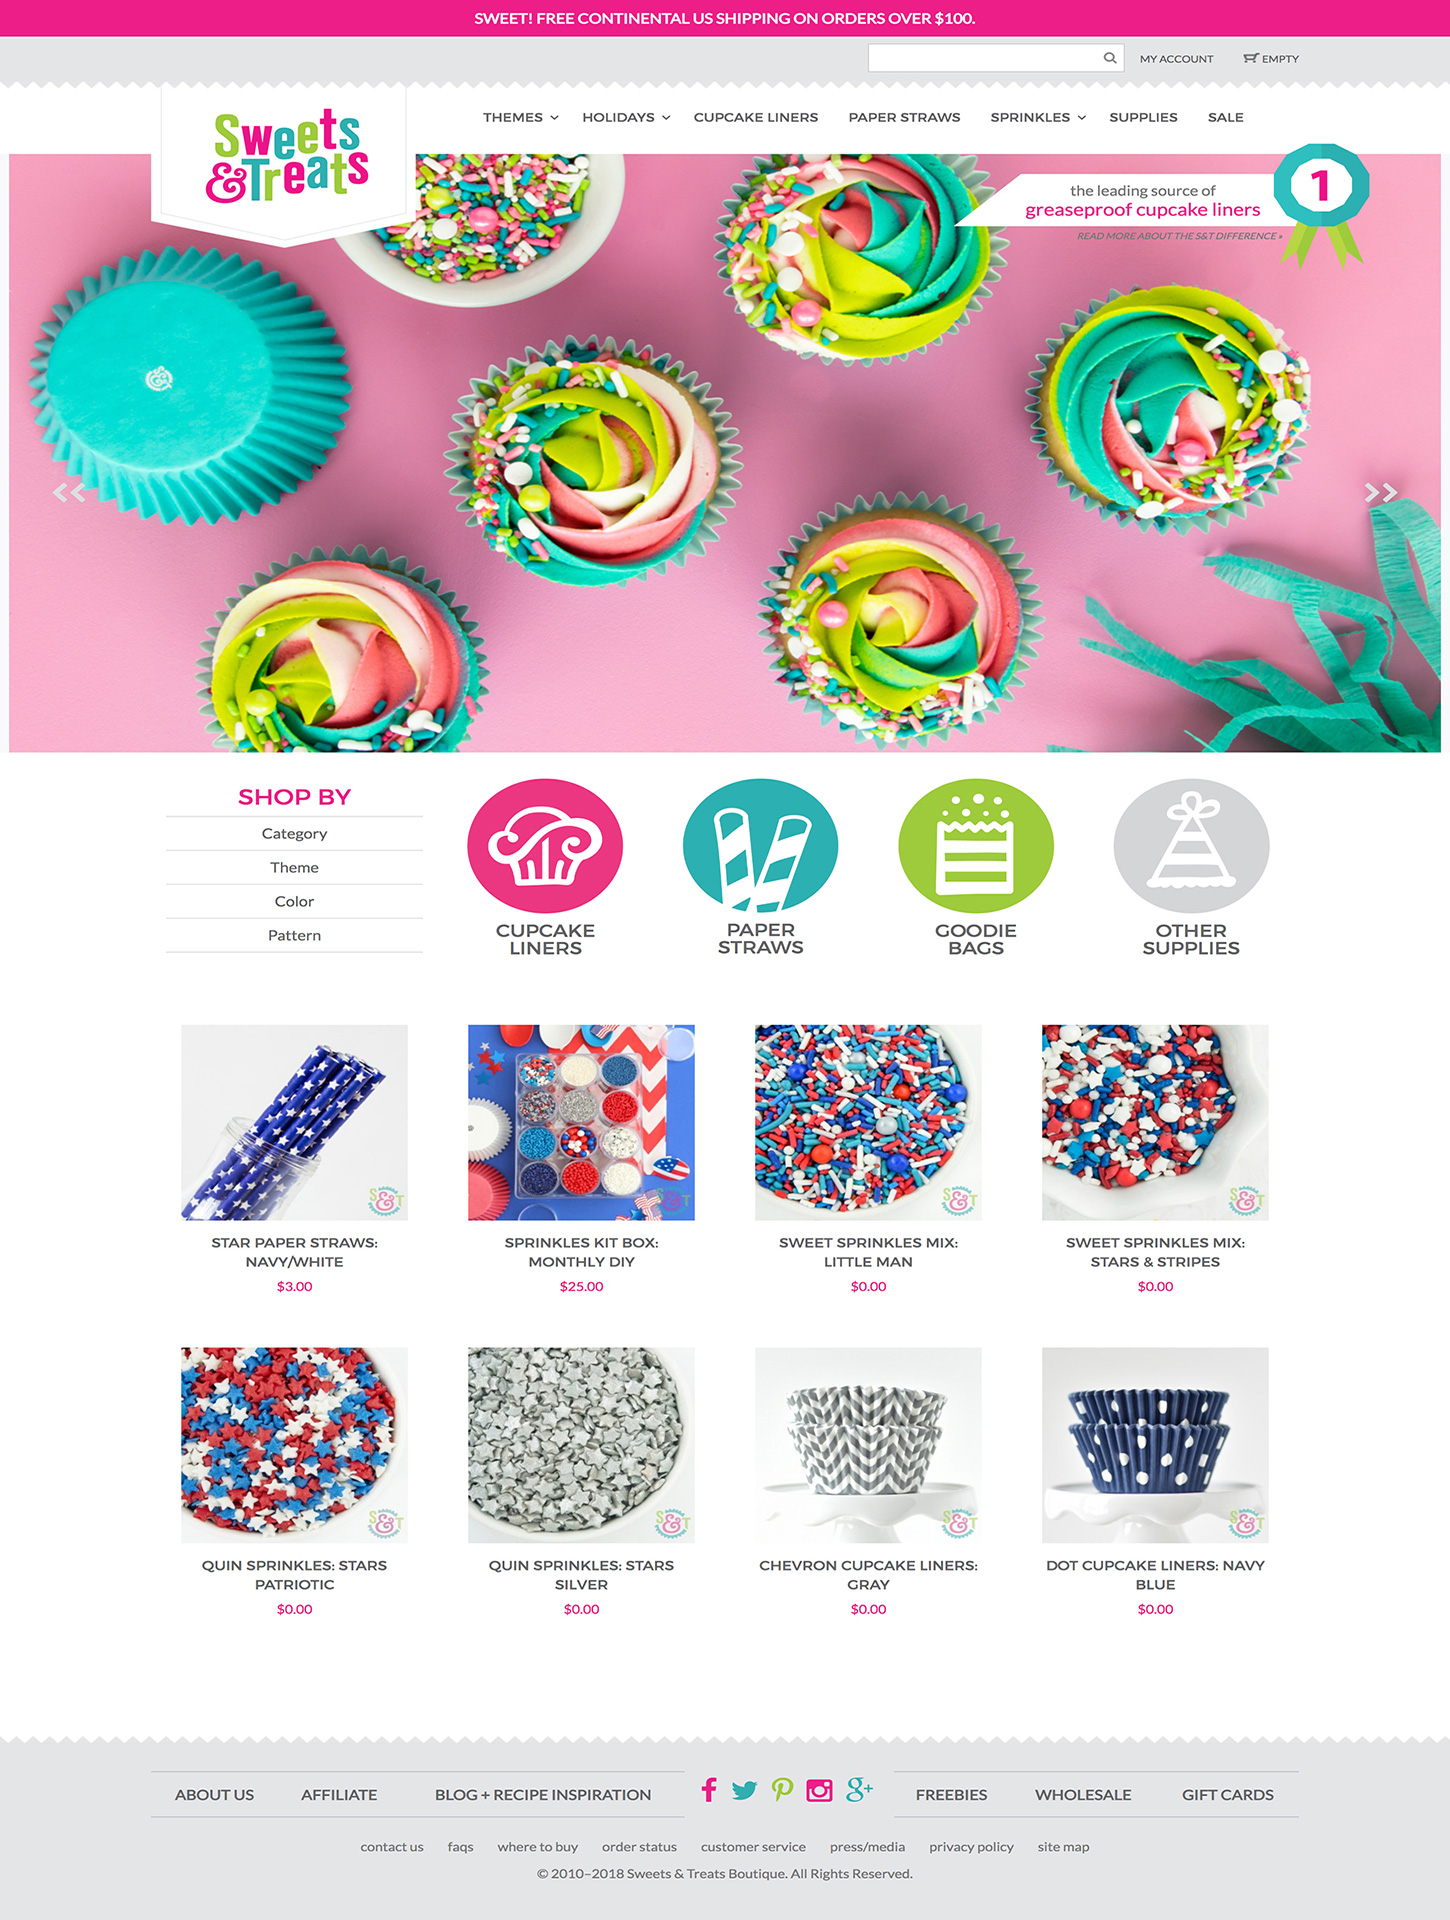 Screenshot of the Sweets & Treats website home page.